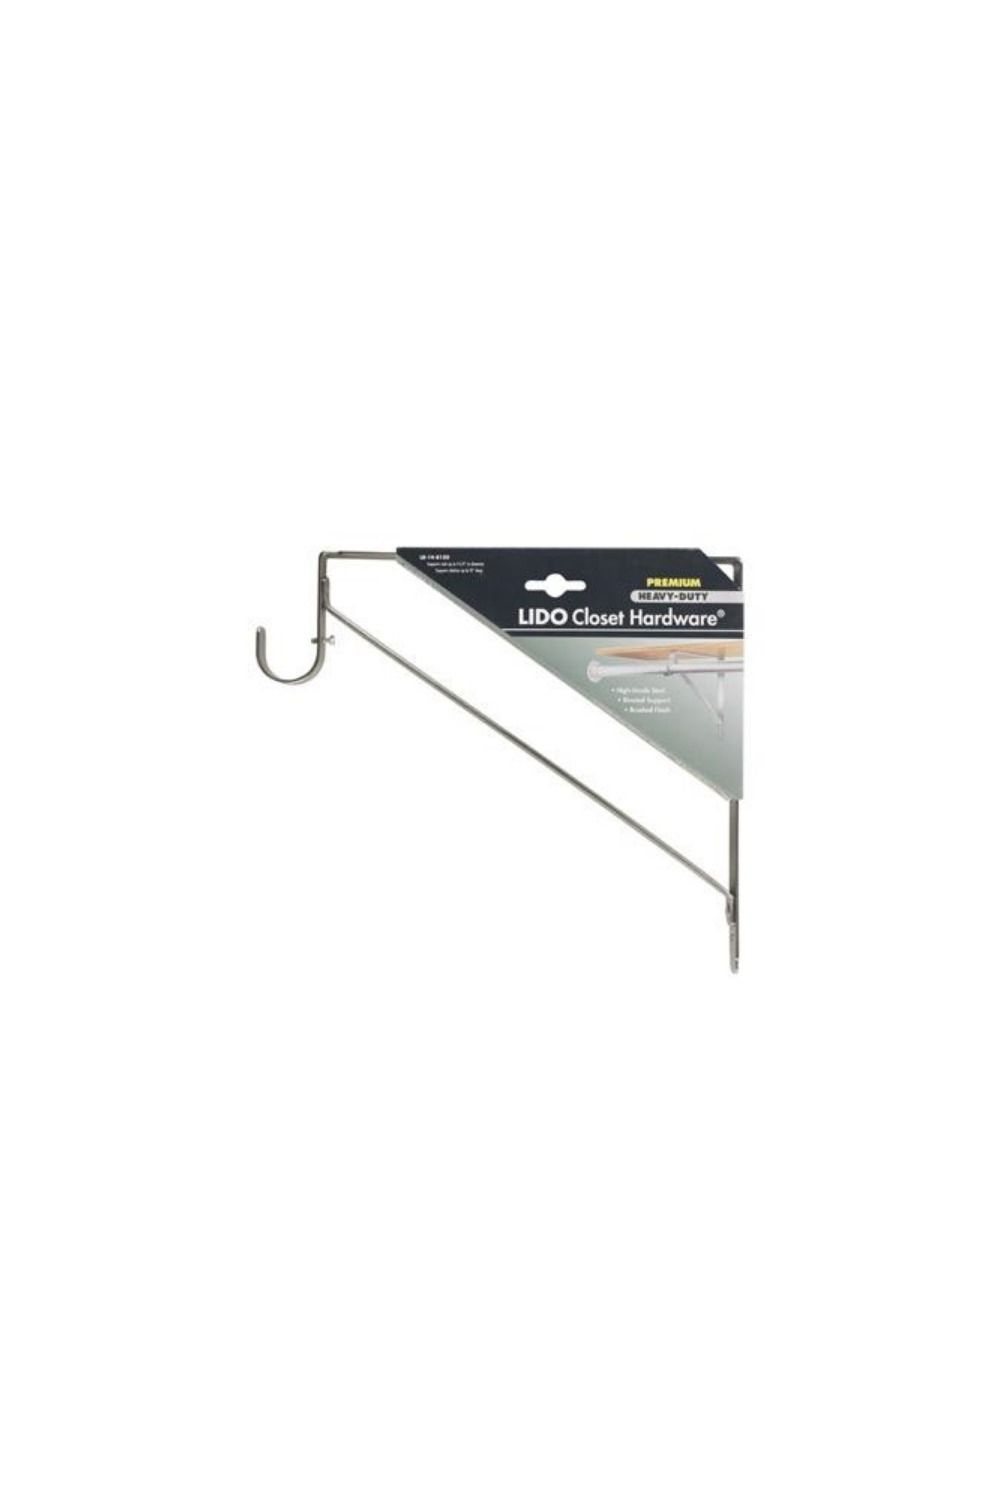 Our Premium Closet Brackets Give Dual Support For Both Closet Rods And Shelving Made From The Highest Quality Metals A Closet Rods Bracket No Closet Solutions